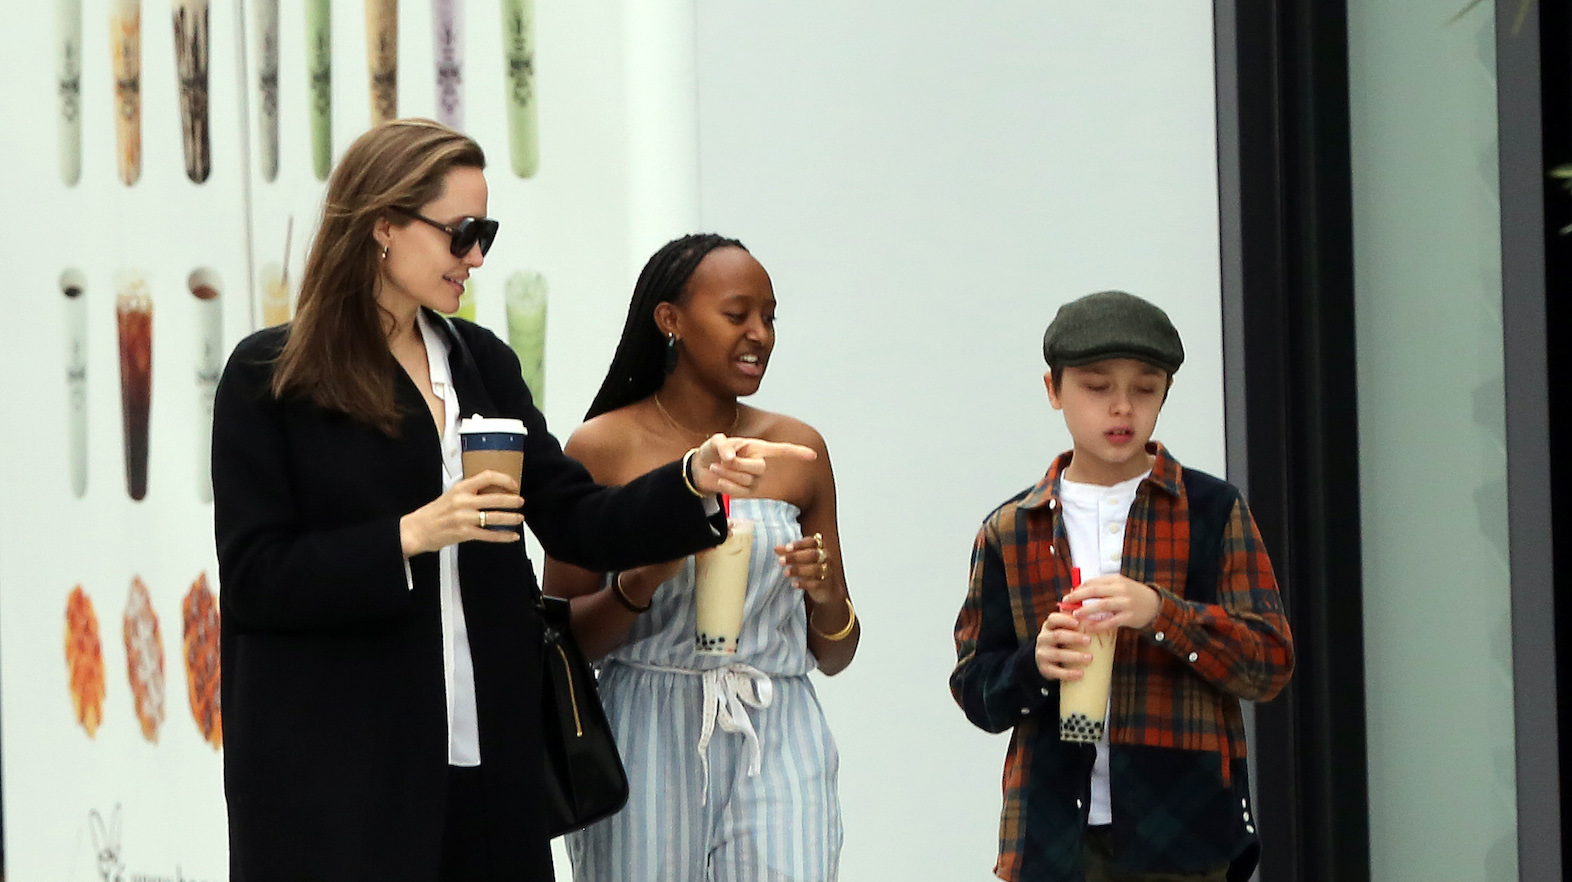 46bd5118274a All smiles here! It's been a tough few years for Angelina Jolie and her  kids ever since she filed for divorce from her estranged husband, Brad Pitt.